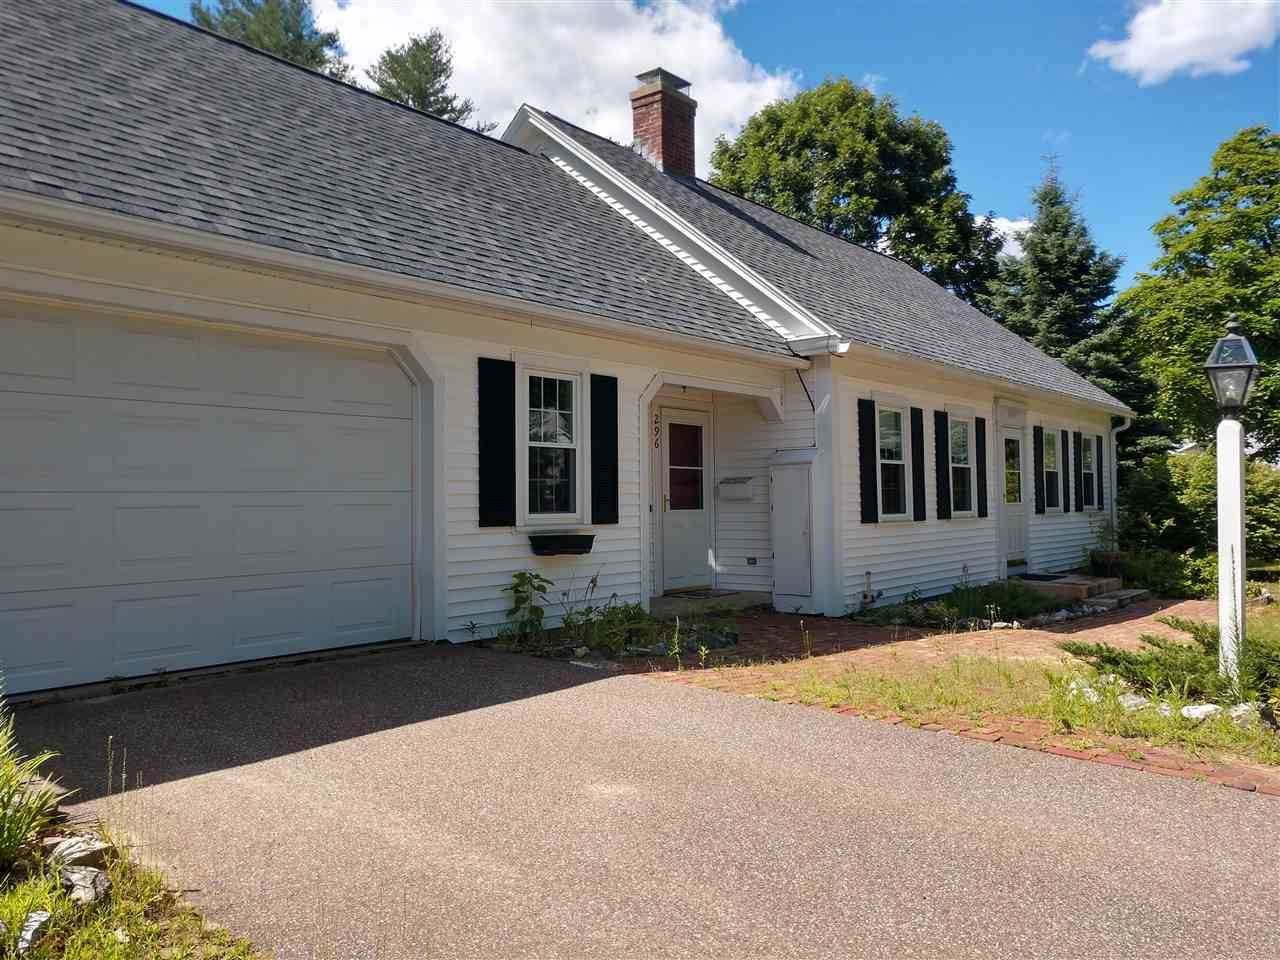 Photo of 296 Victory Drive Franklin NH 03235